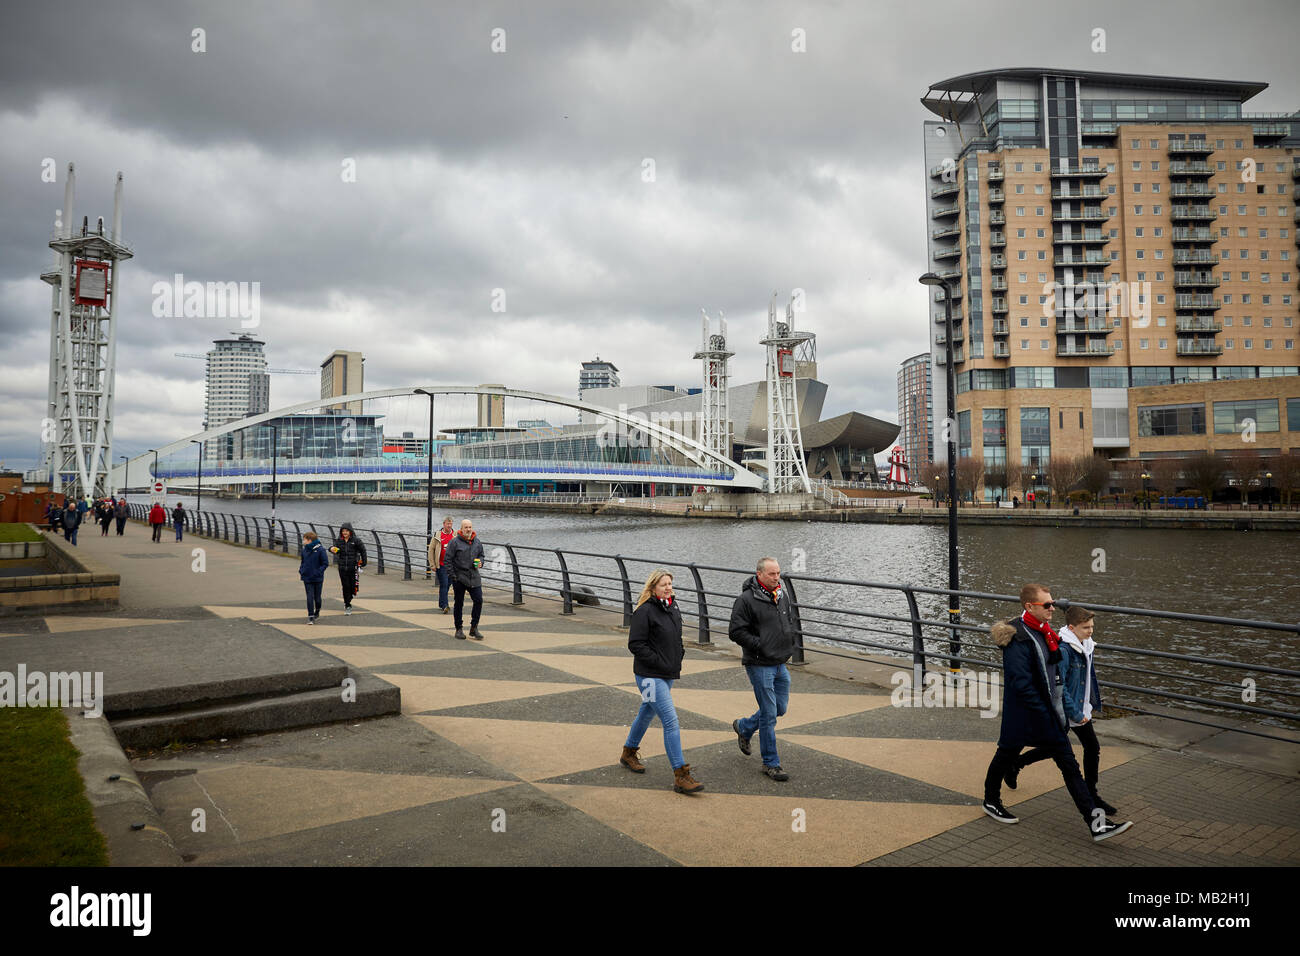 Manchester Ship Canal at Trafford Park Salford Quays, Manchester United football fans walking along the Trafford side to the match - Stock Image